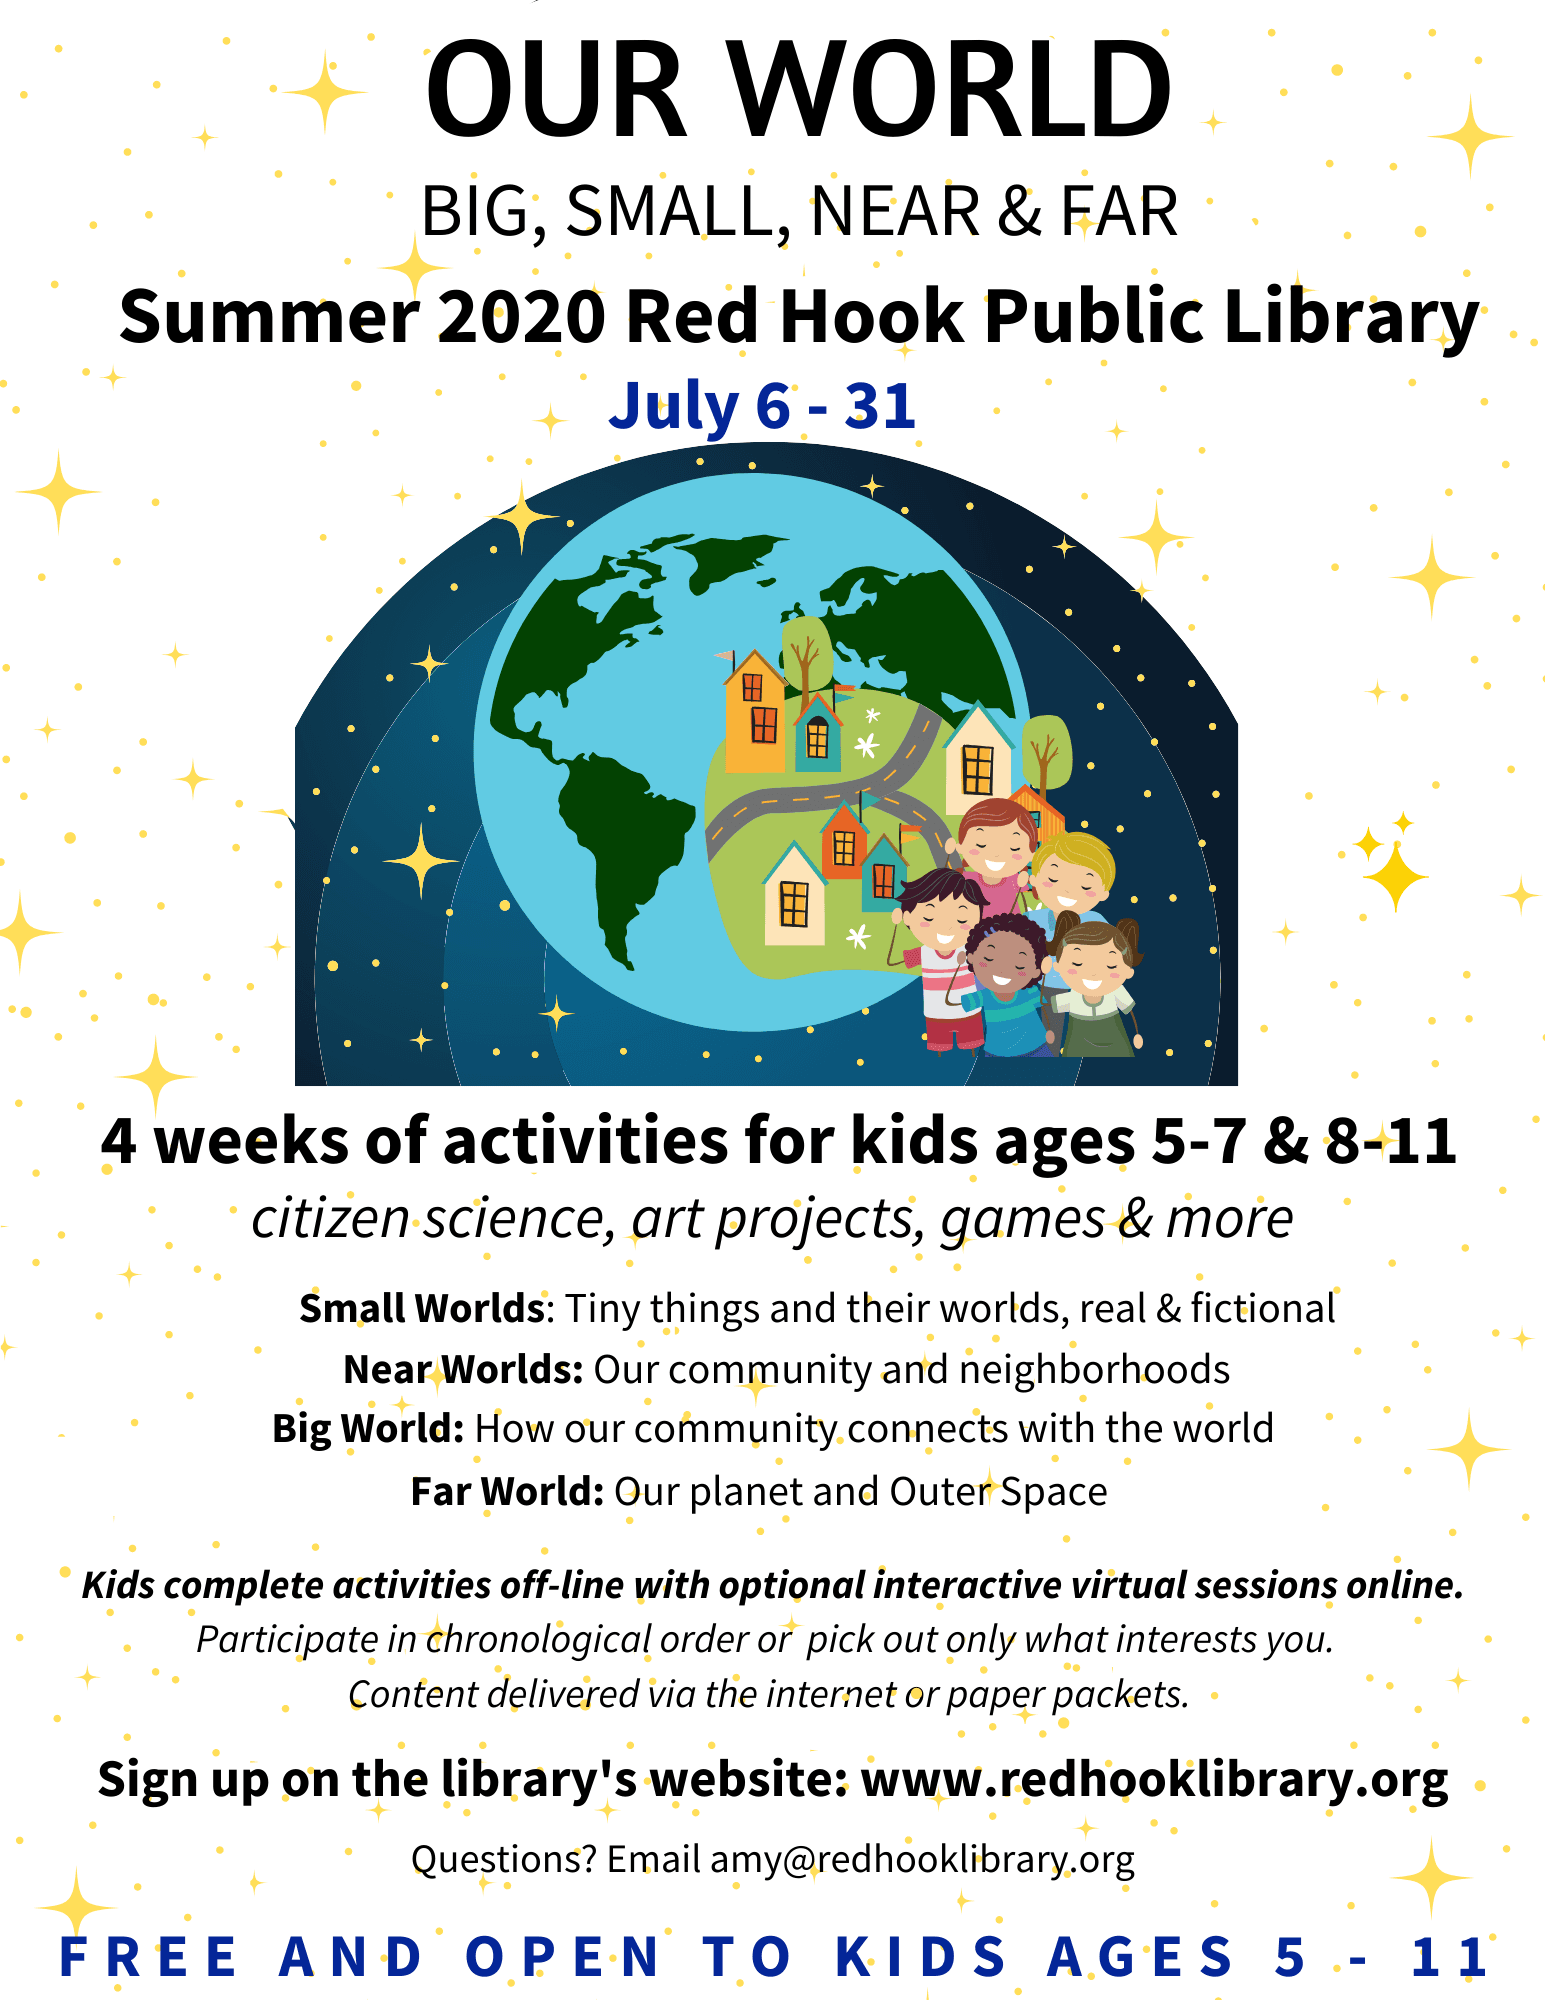 Summer 2020 Red Hook Public Library